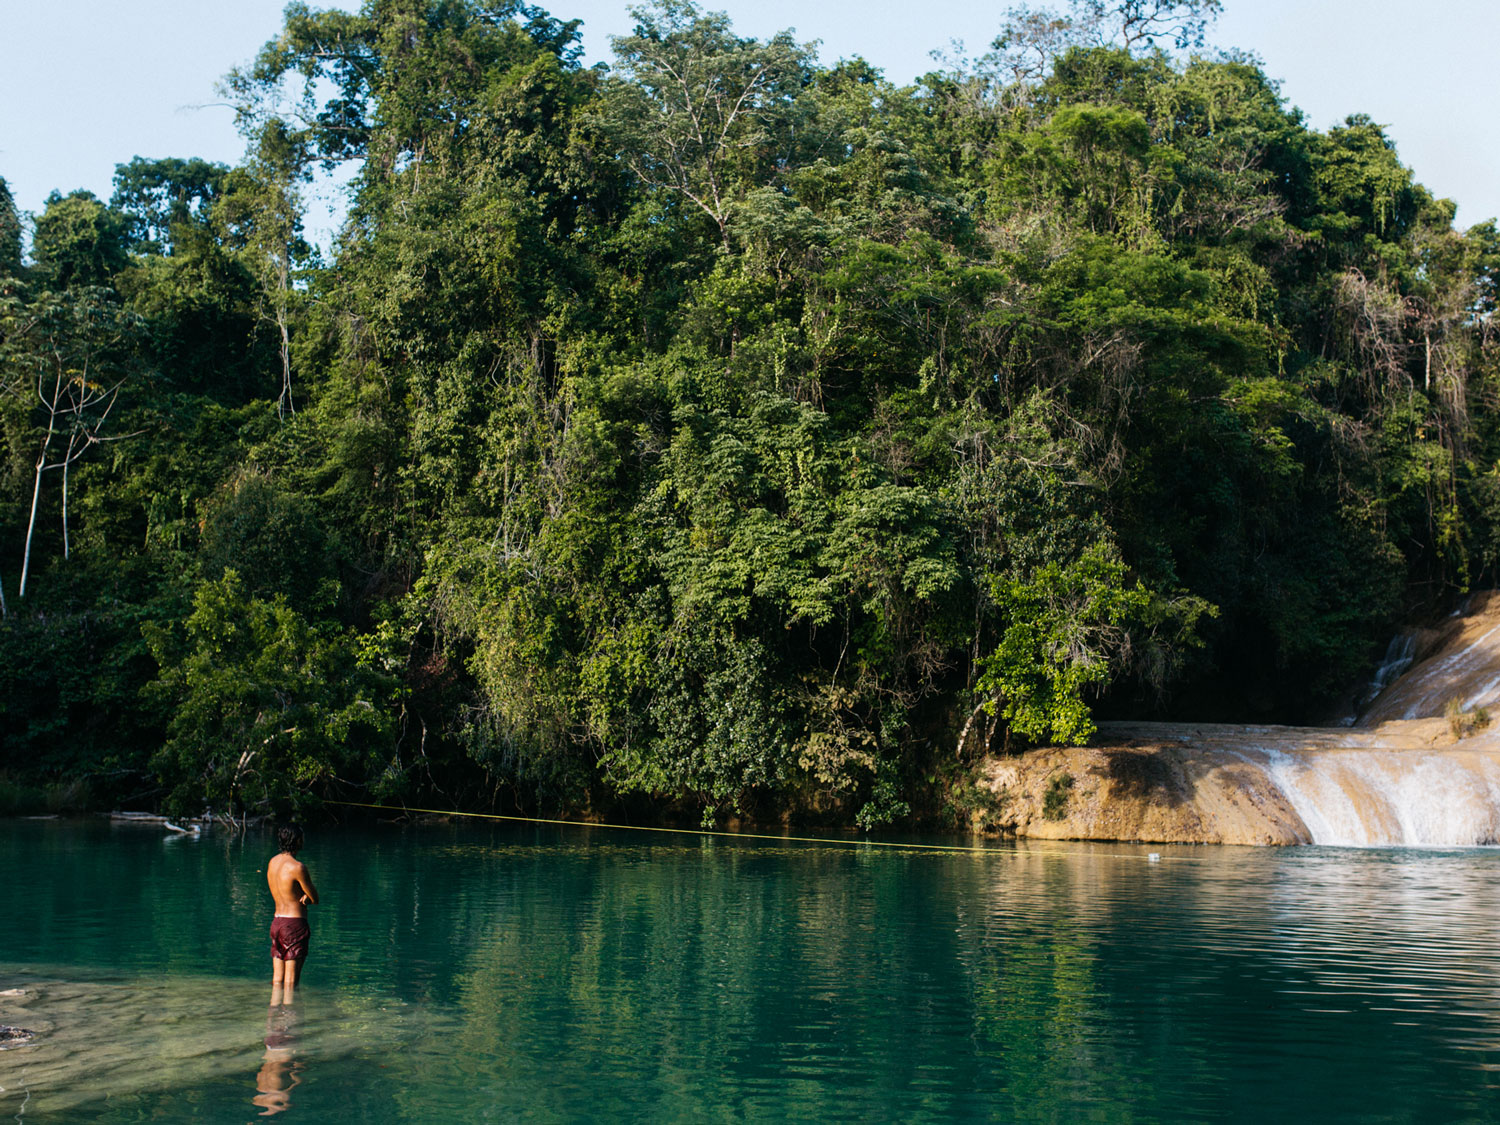 Hammocks_and_Ruins_Town_Villages_Chiapas_Lakes_Rivers_Jungles_Highlands_Agua_Azul_Waterfalls16.jpg